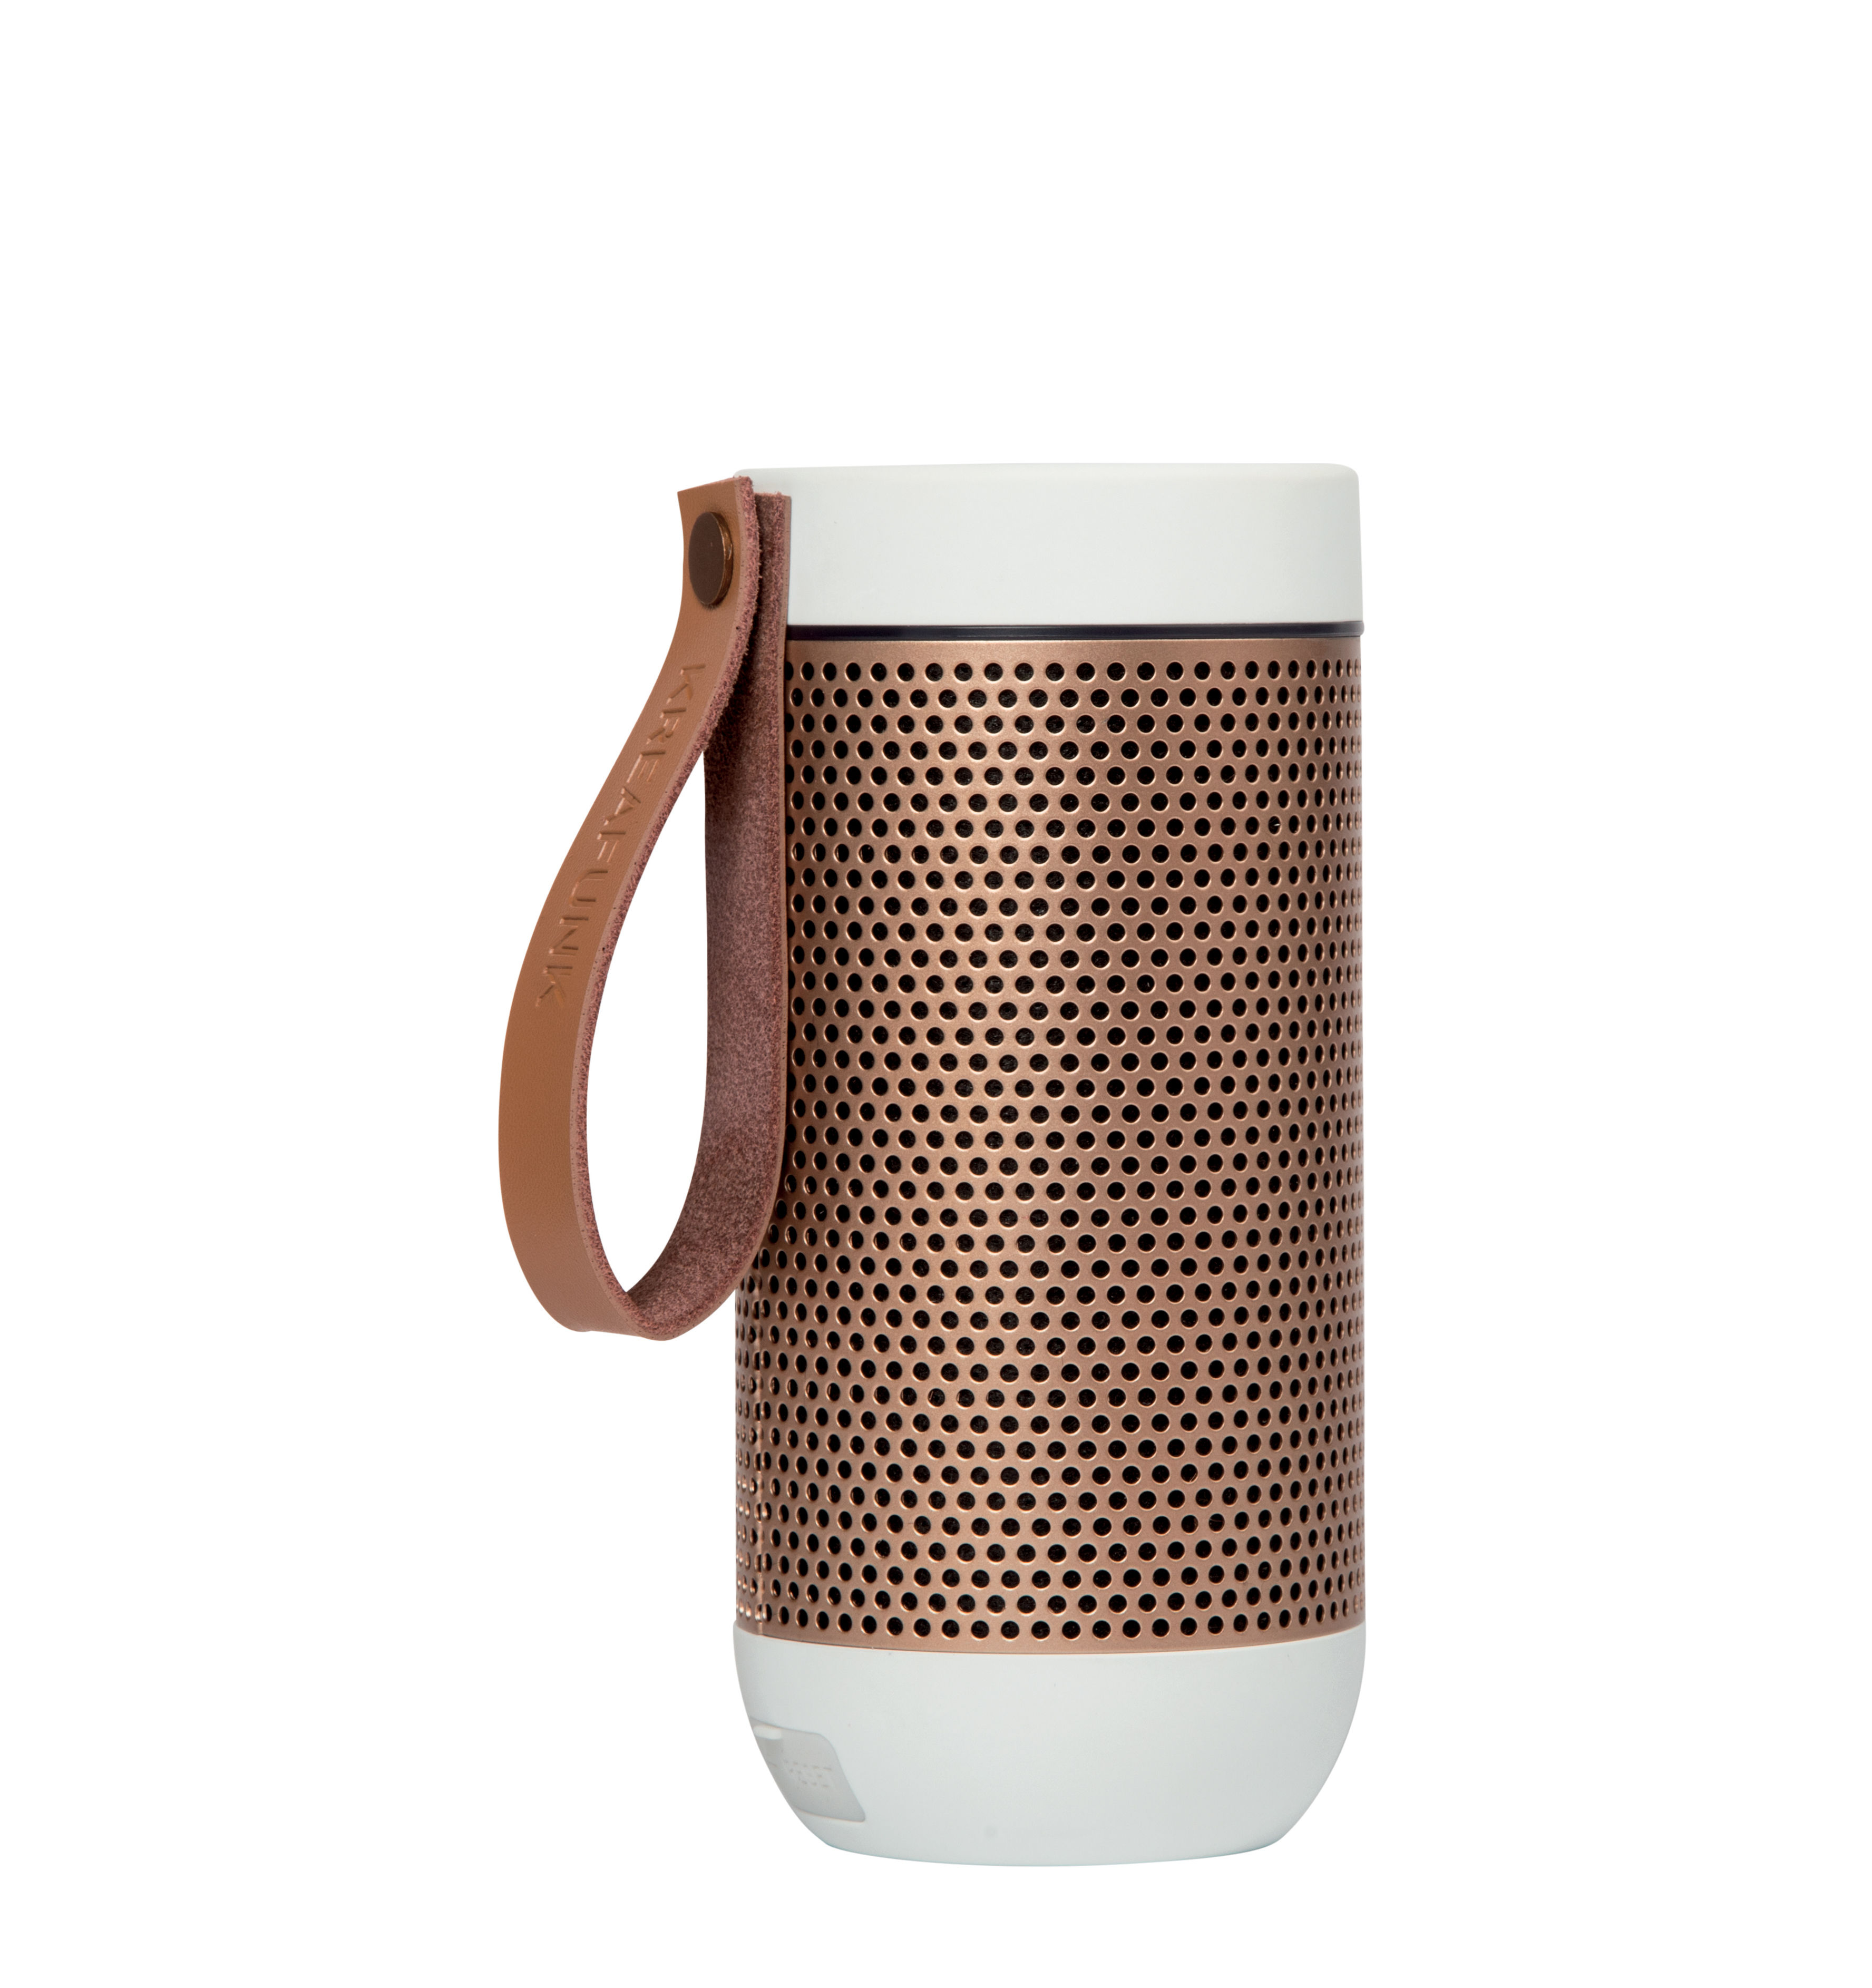 Valentine's day - Valentines Day: Our best ideas for Him - aFUNK Bluetooth speaker - / Portable - Wireless by Kreafunk - White /  Rose gold - Aluminium, Leather, Plastic material